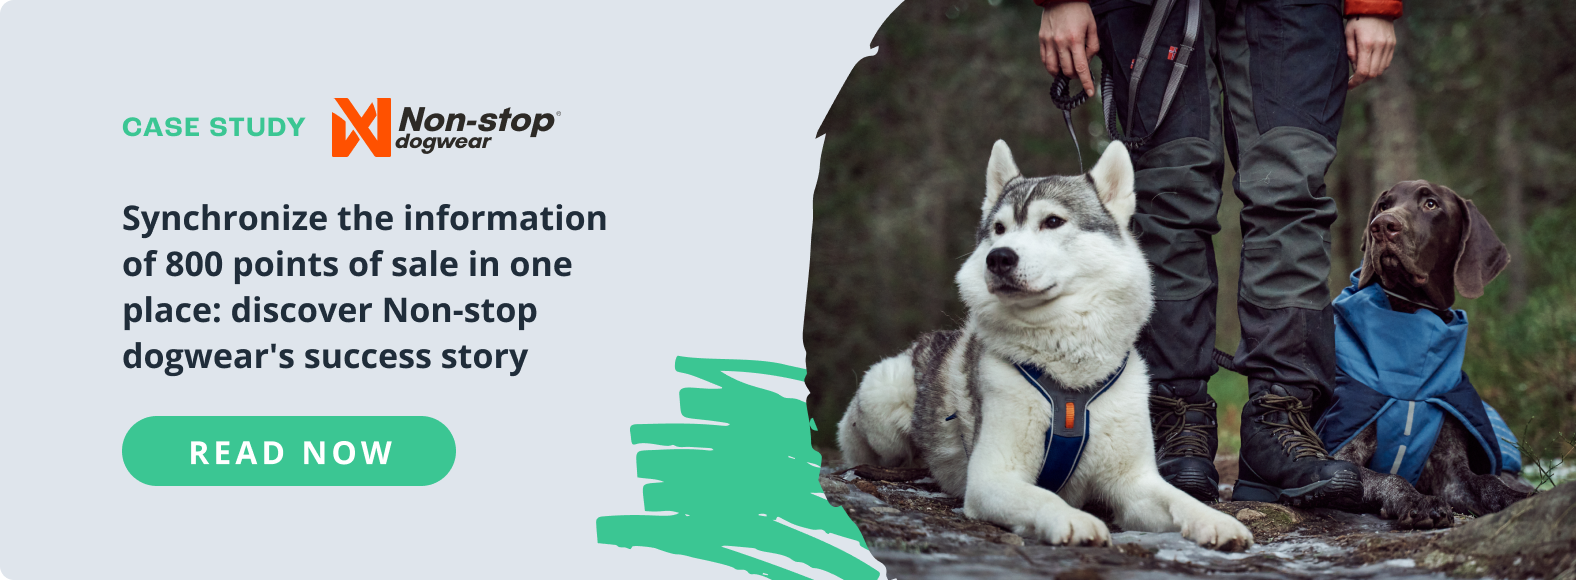 Case study Non-stop dogwear & Sales Layer